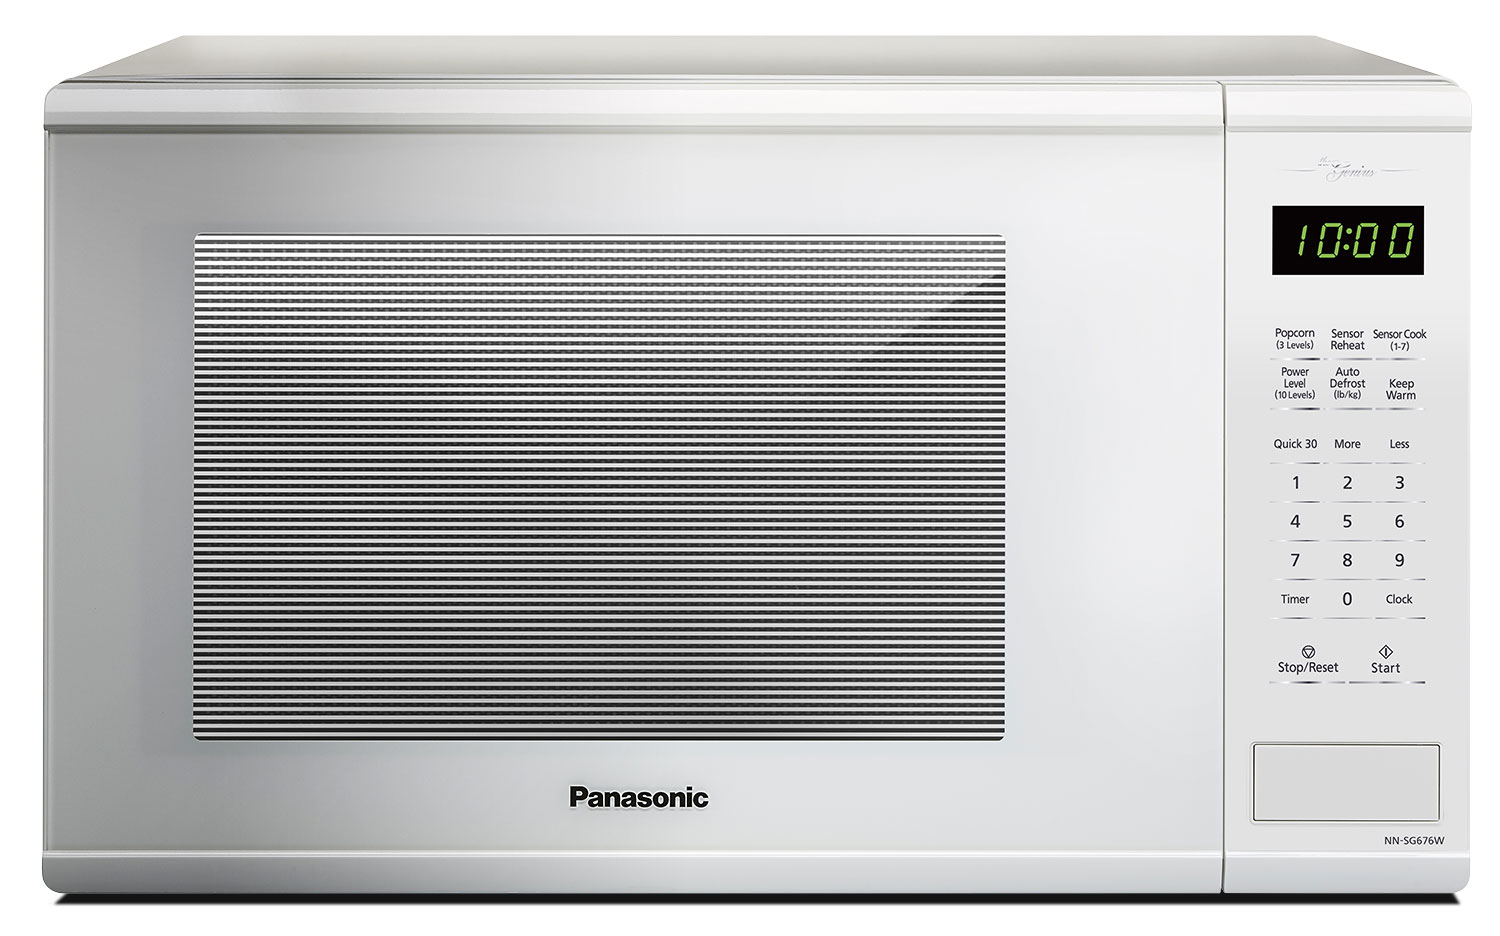 Cooking Products - Panasonic Genius® 1.3 Cu. Ft. Countertop Microwave – NNSG676W